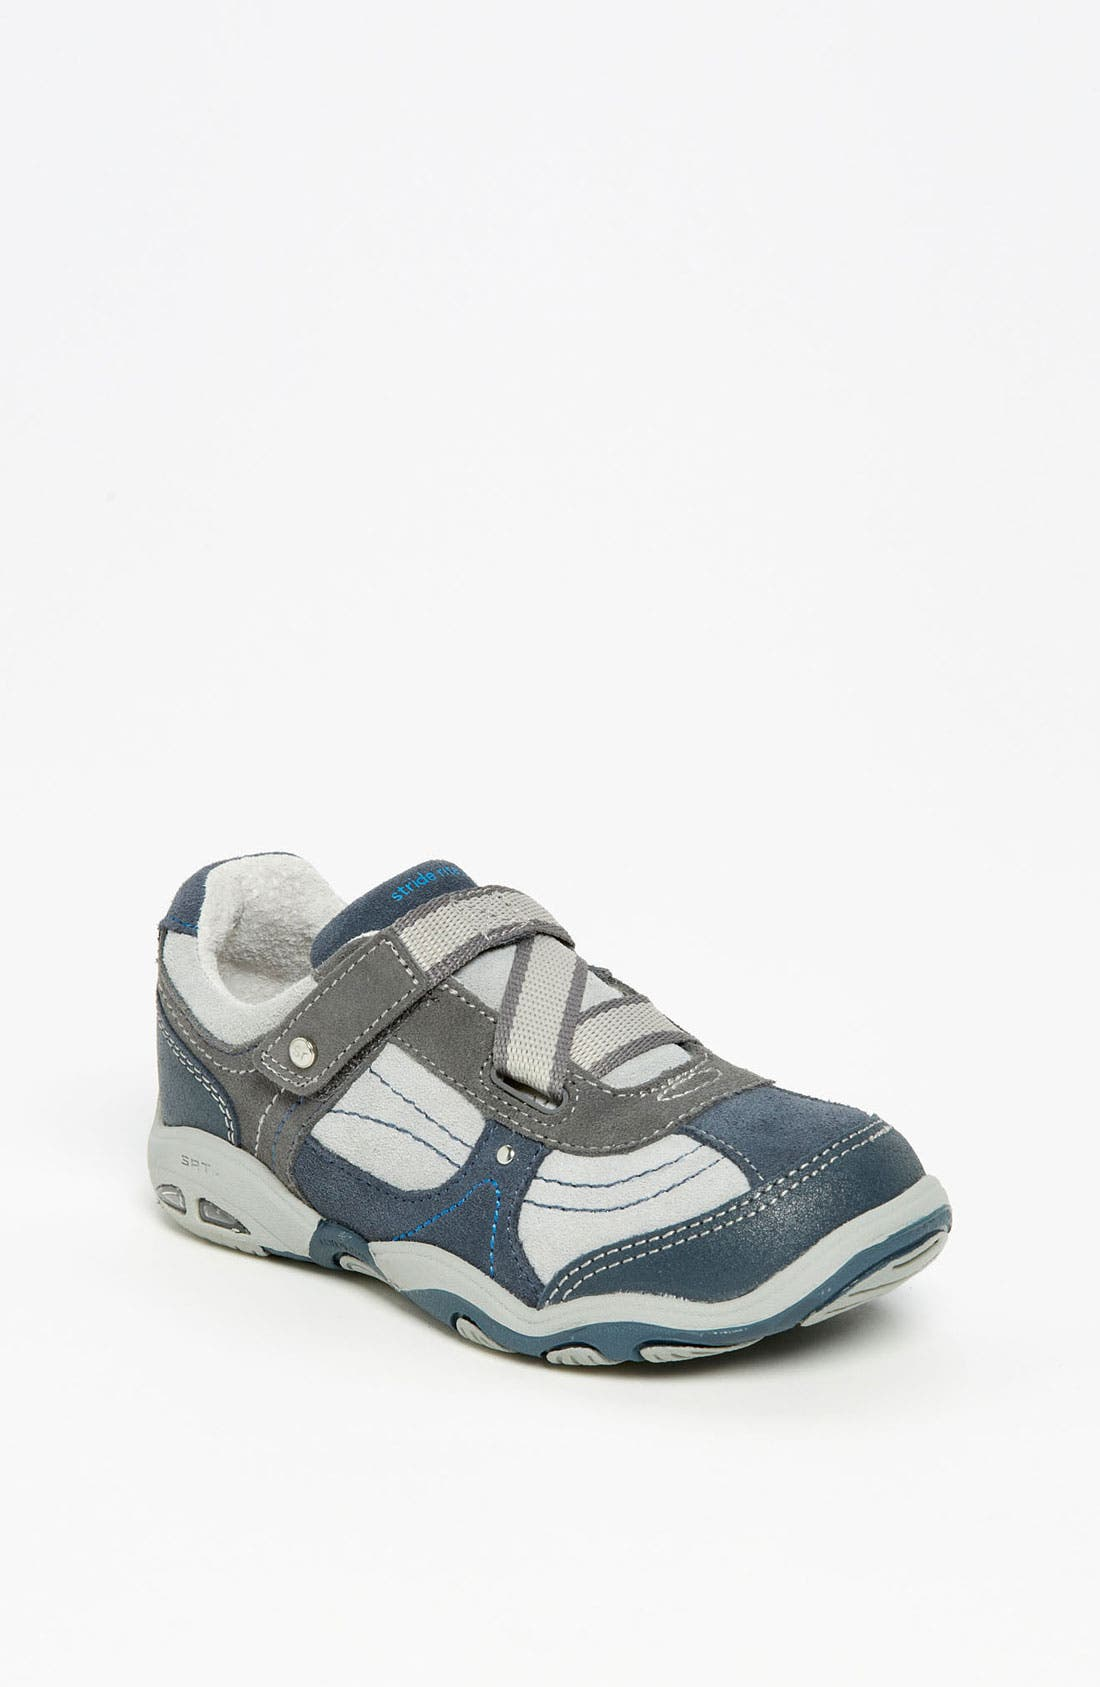 Main Image - Stride Rite 'Chad' Sneaker (Toddler & Little Kid)